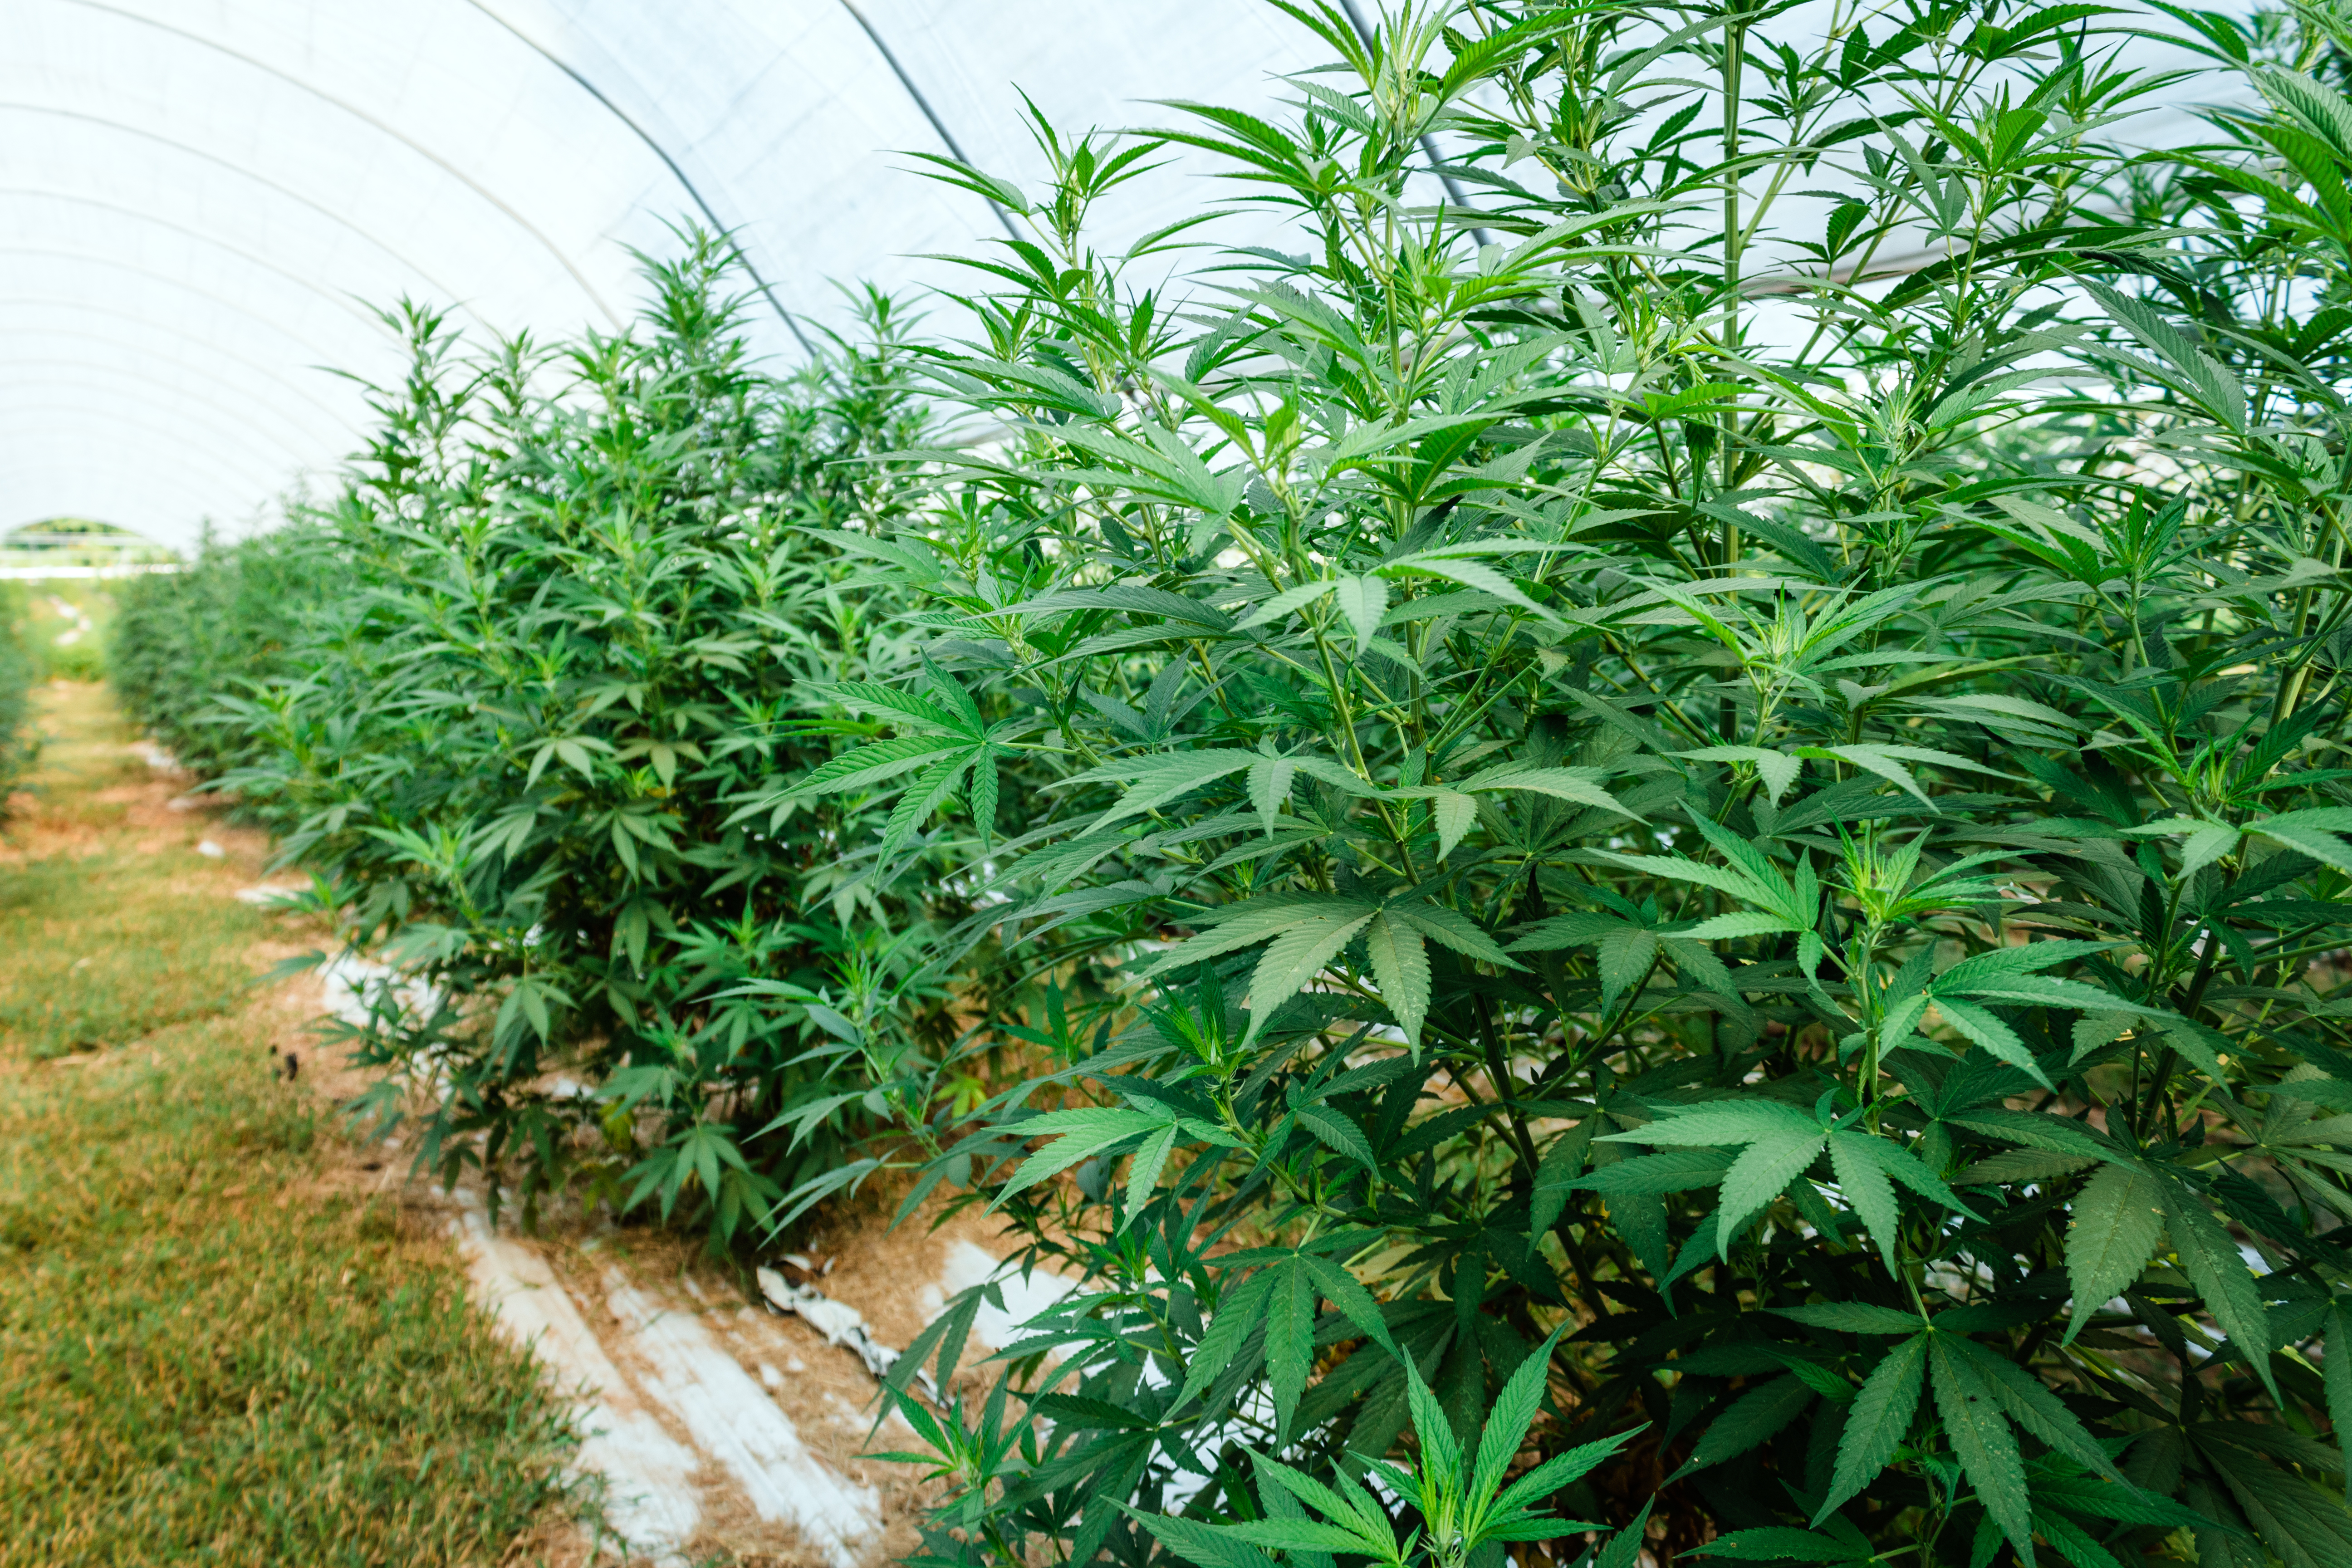 Rows of cannabis in a hoop house